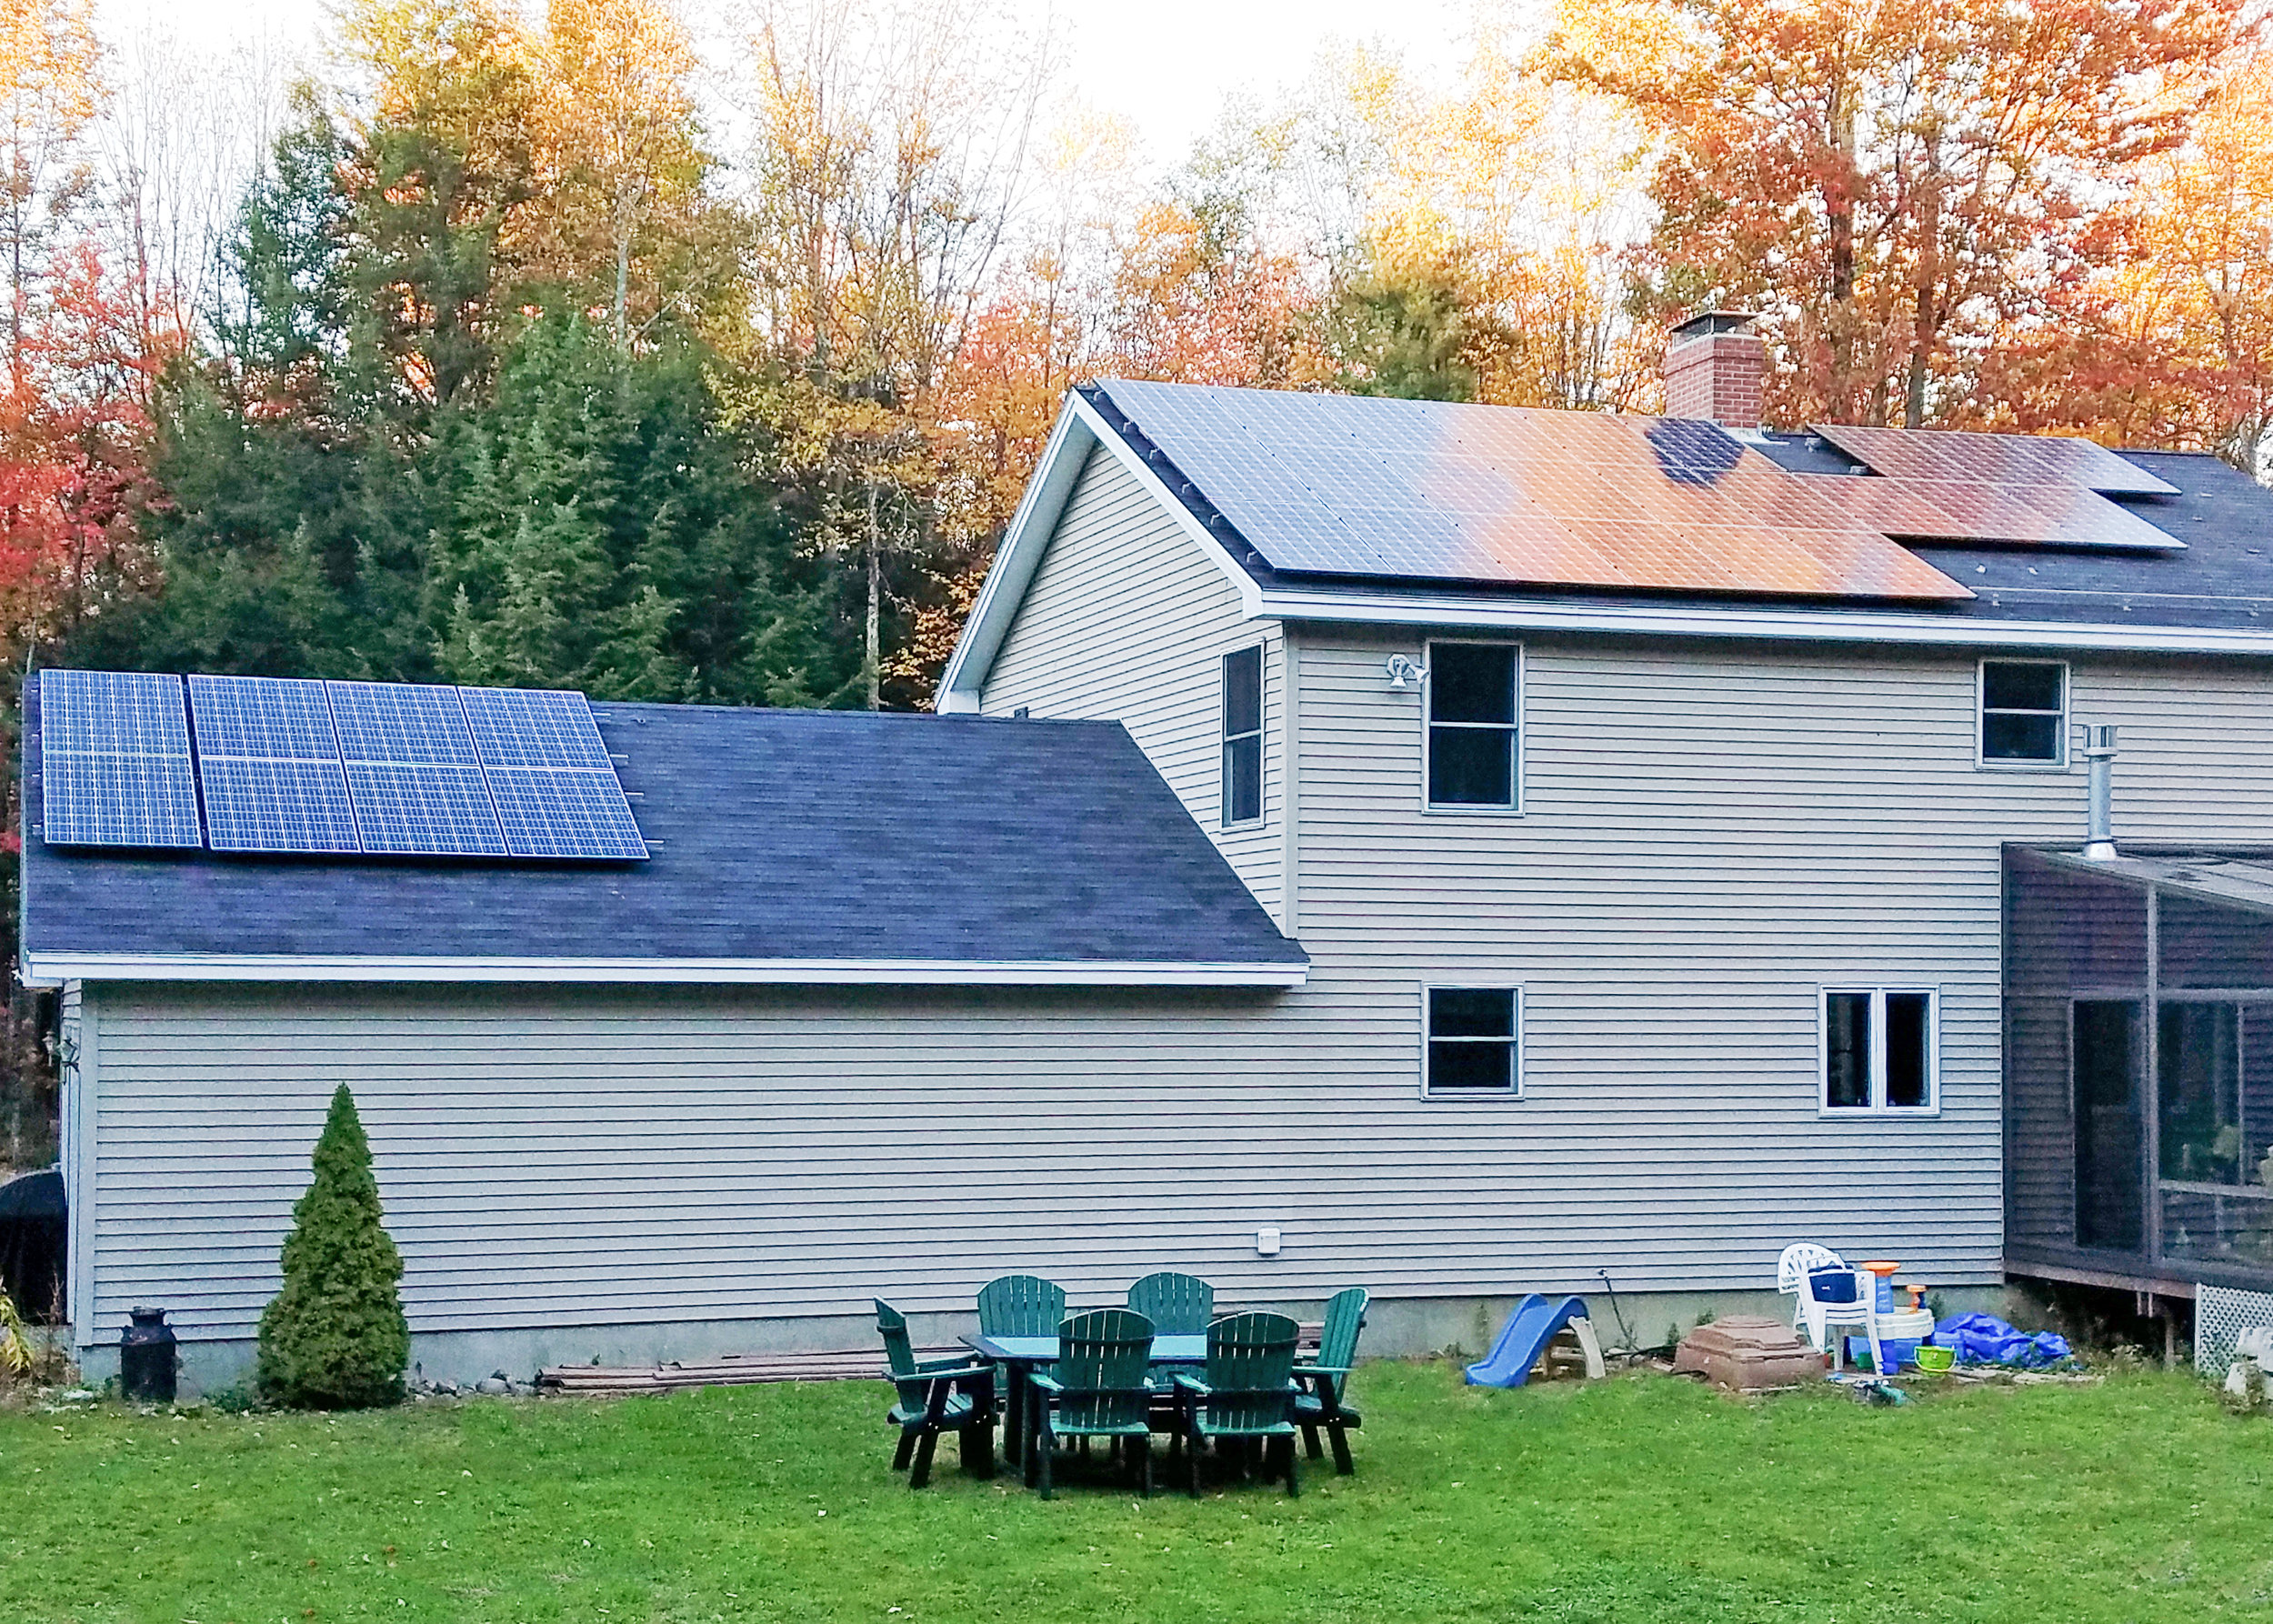 Matt & Carrie Thomas' home in Bowdoin has two solar arrays with the ability to put out about 10 kilowatts of electricity. He drives a Chevy Volt and uses wood and electric heat pumps to heat the home. Photo: ReVision Energy